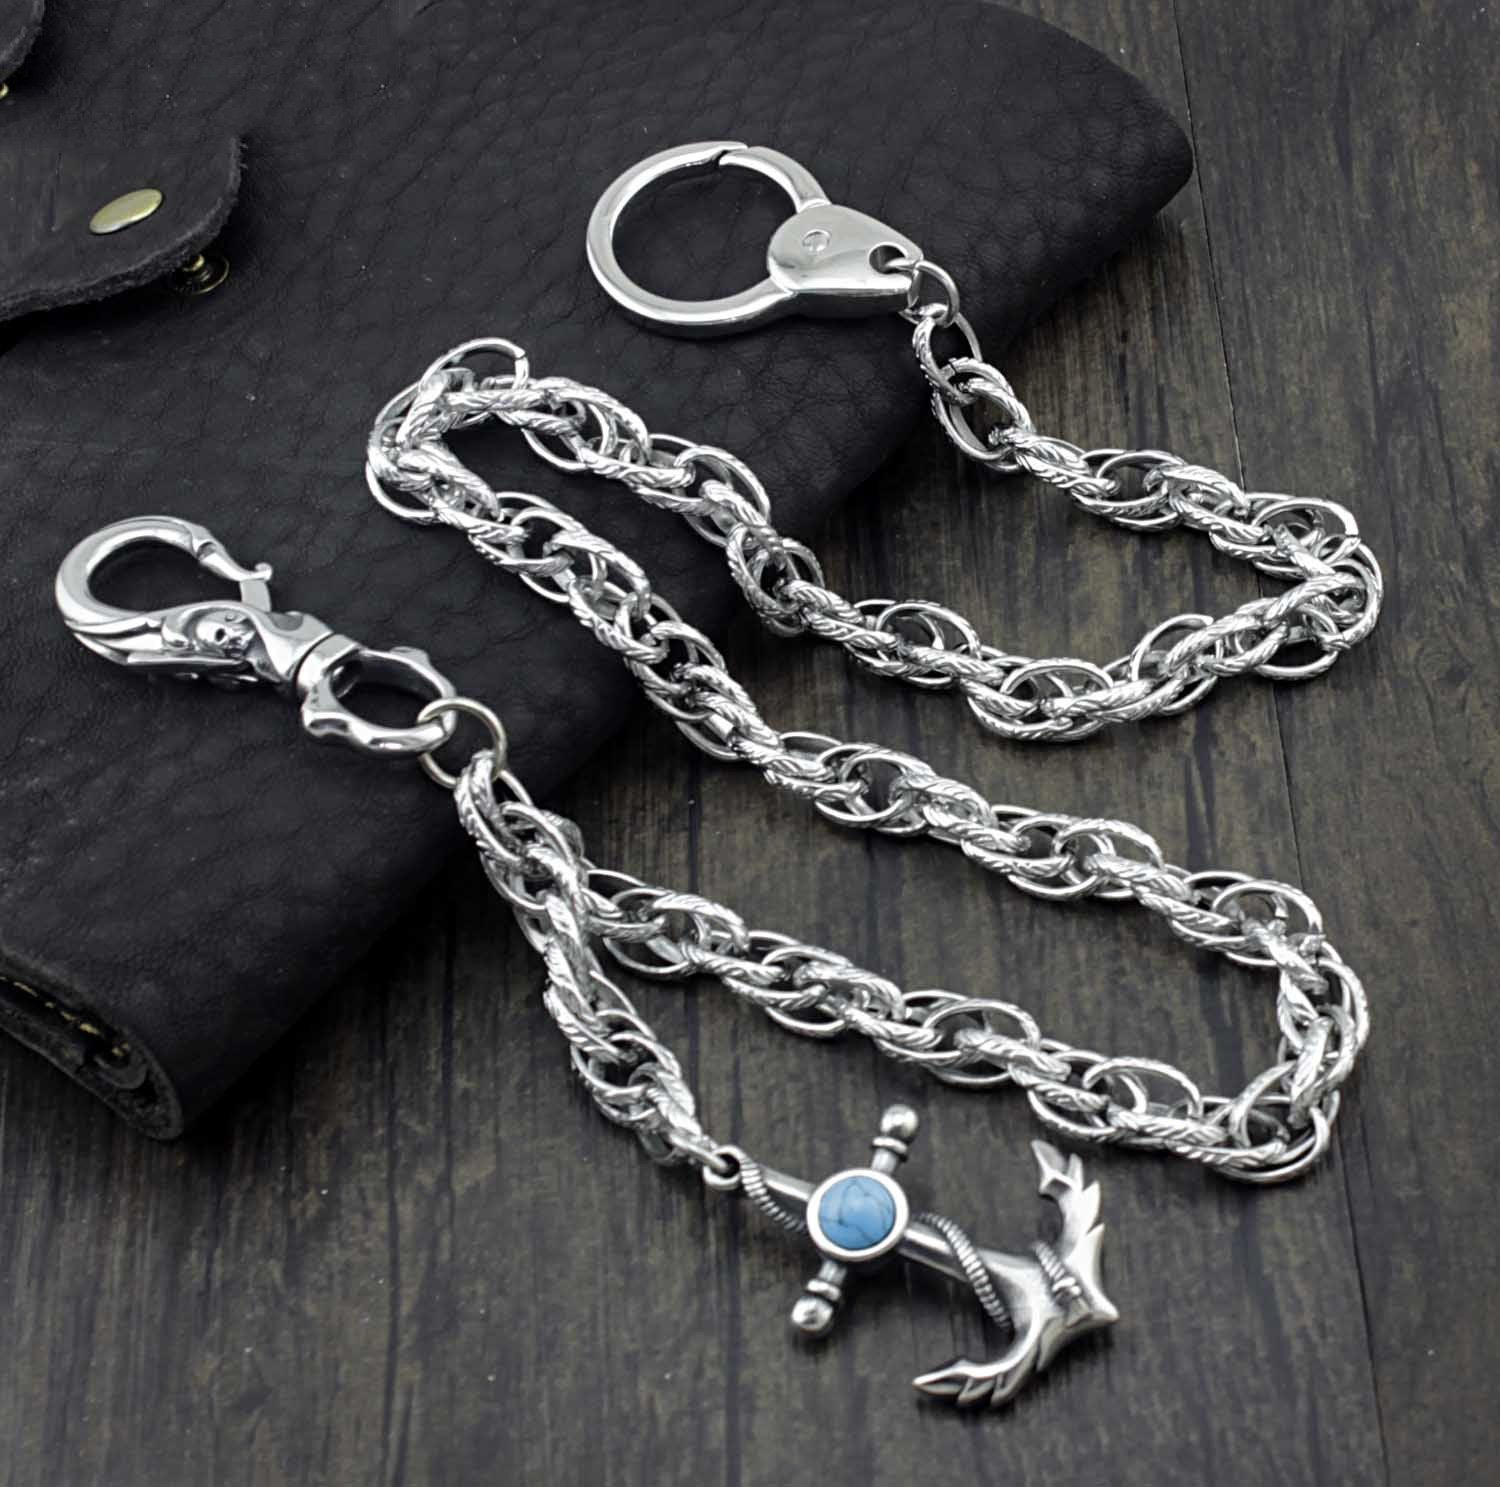 Badass anchor Stainless Steel Mens Rock Punk Motorcycle Pants Chain Wallet Chain Long Key Chain For Men